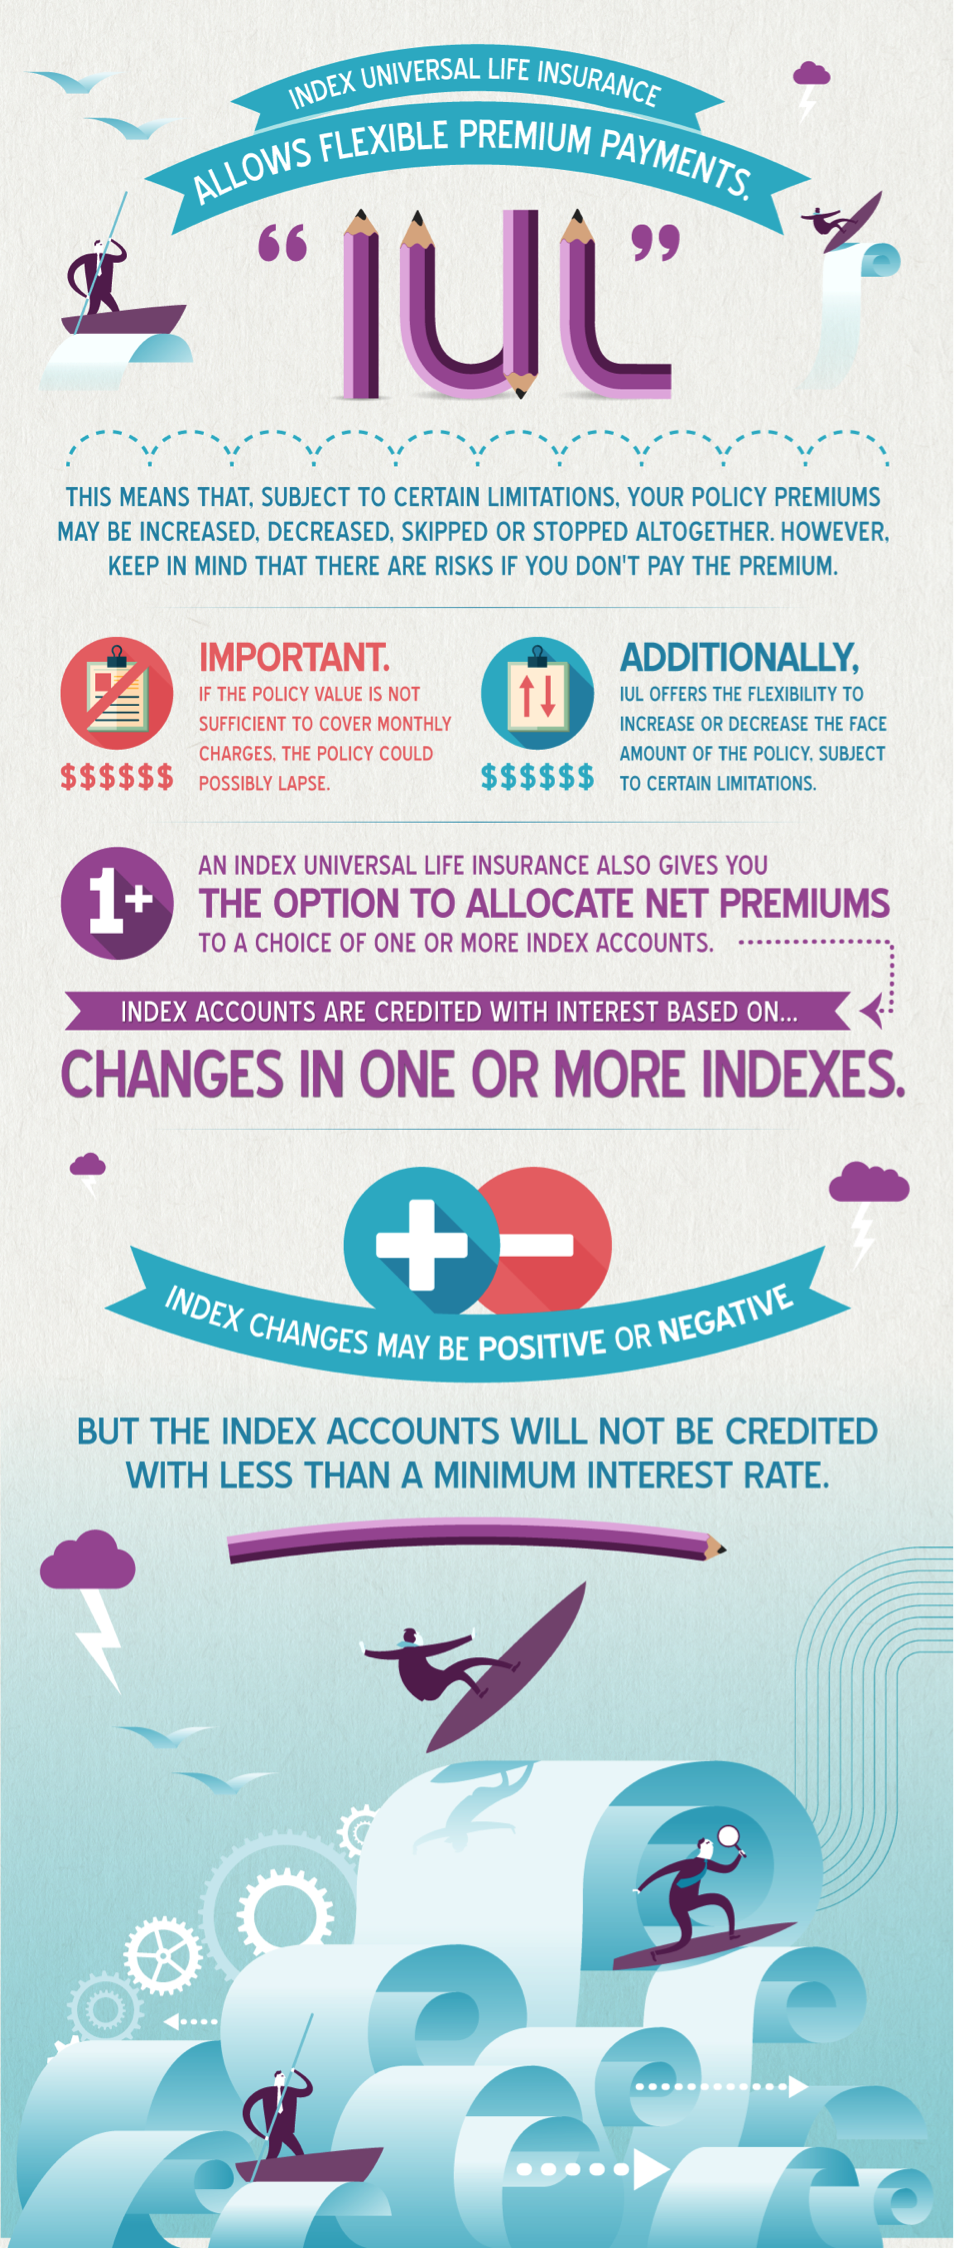 index universal life insurance infographic | Universal ...